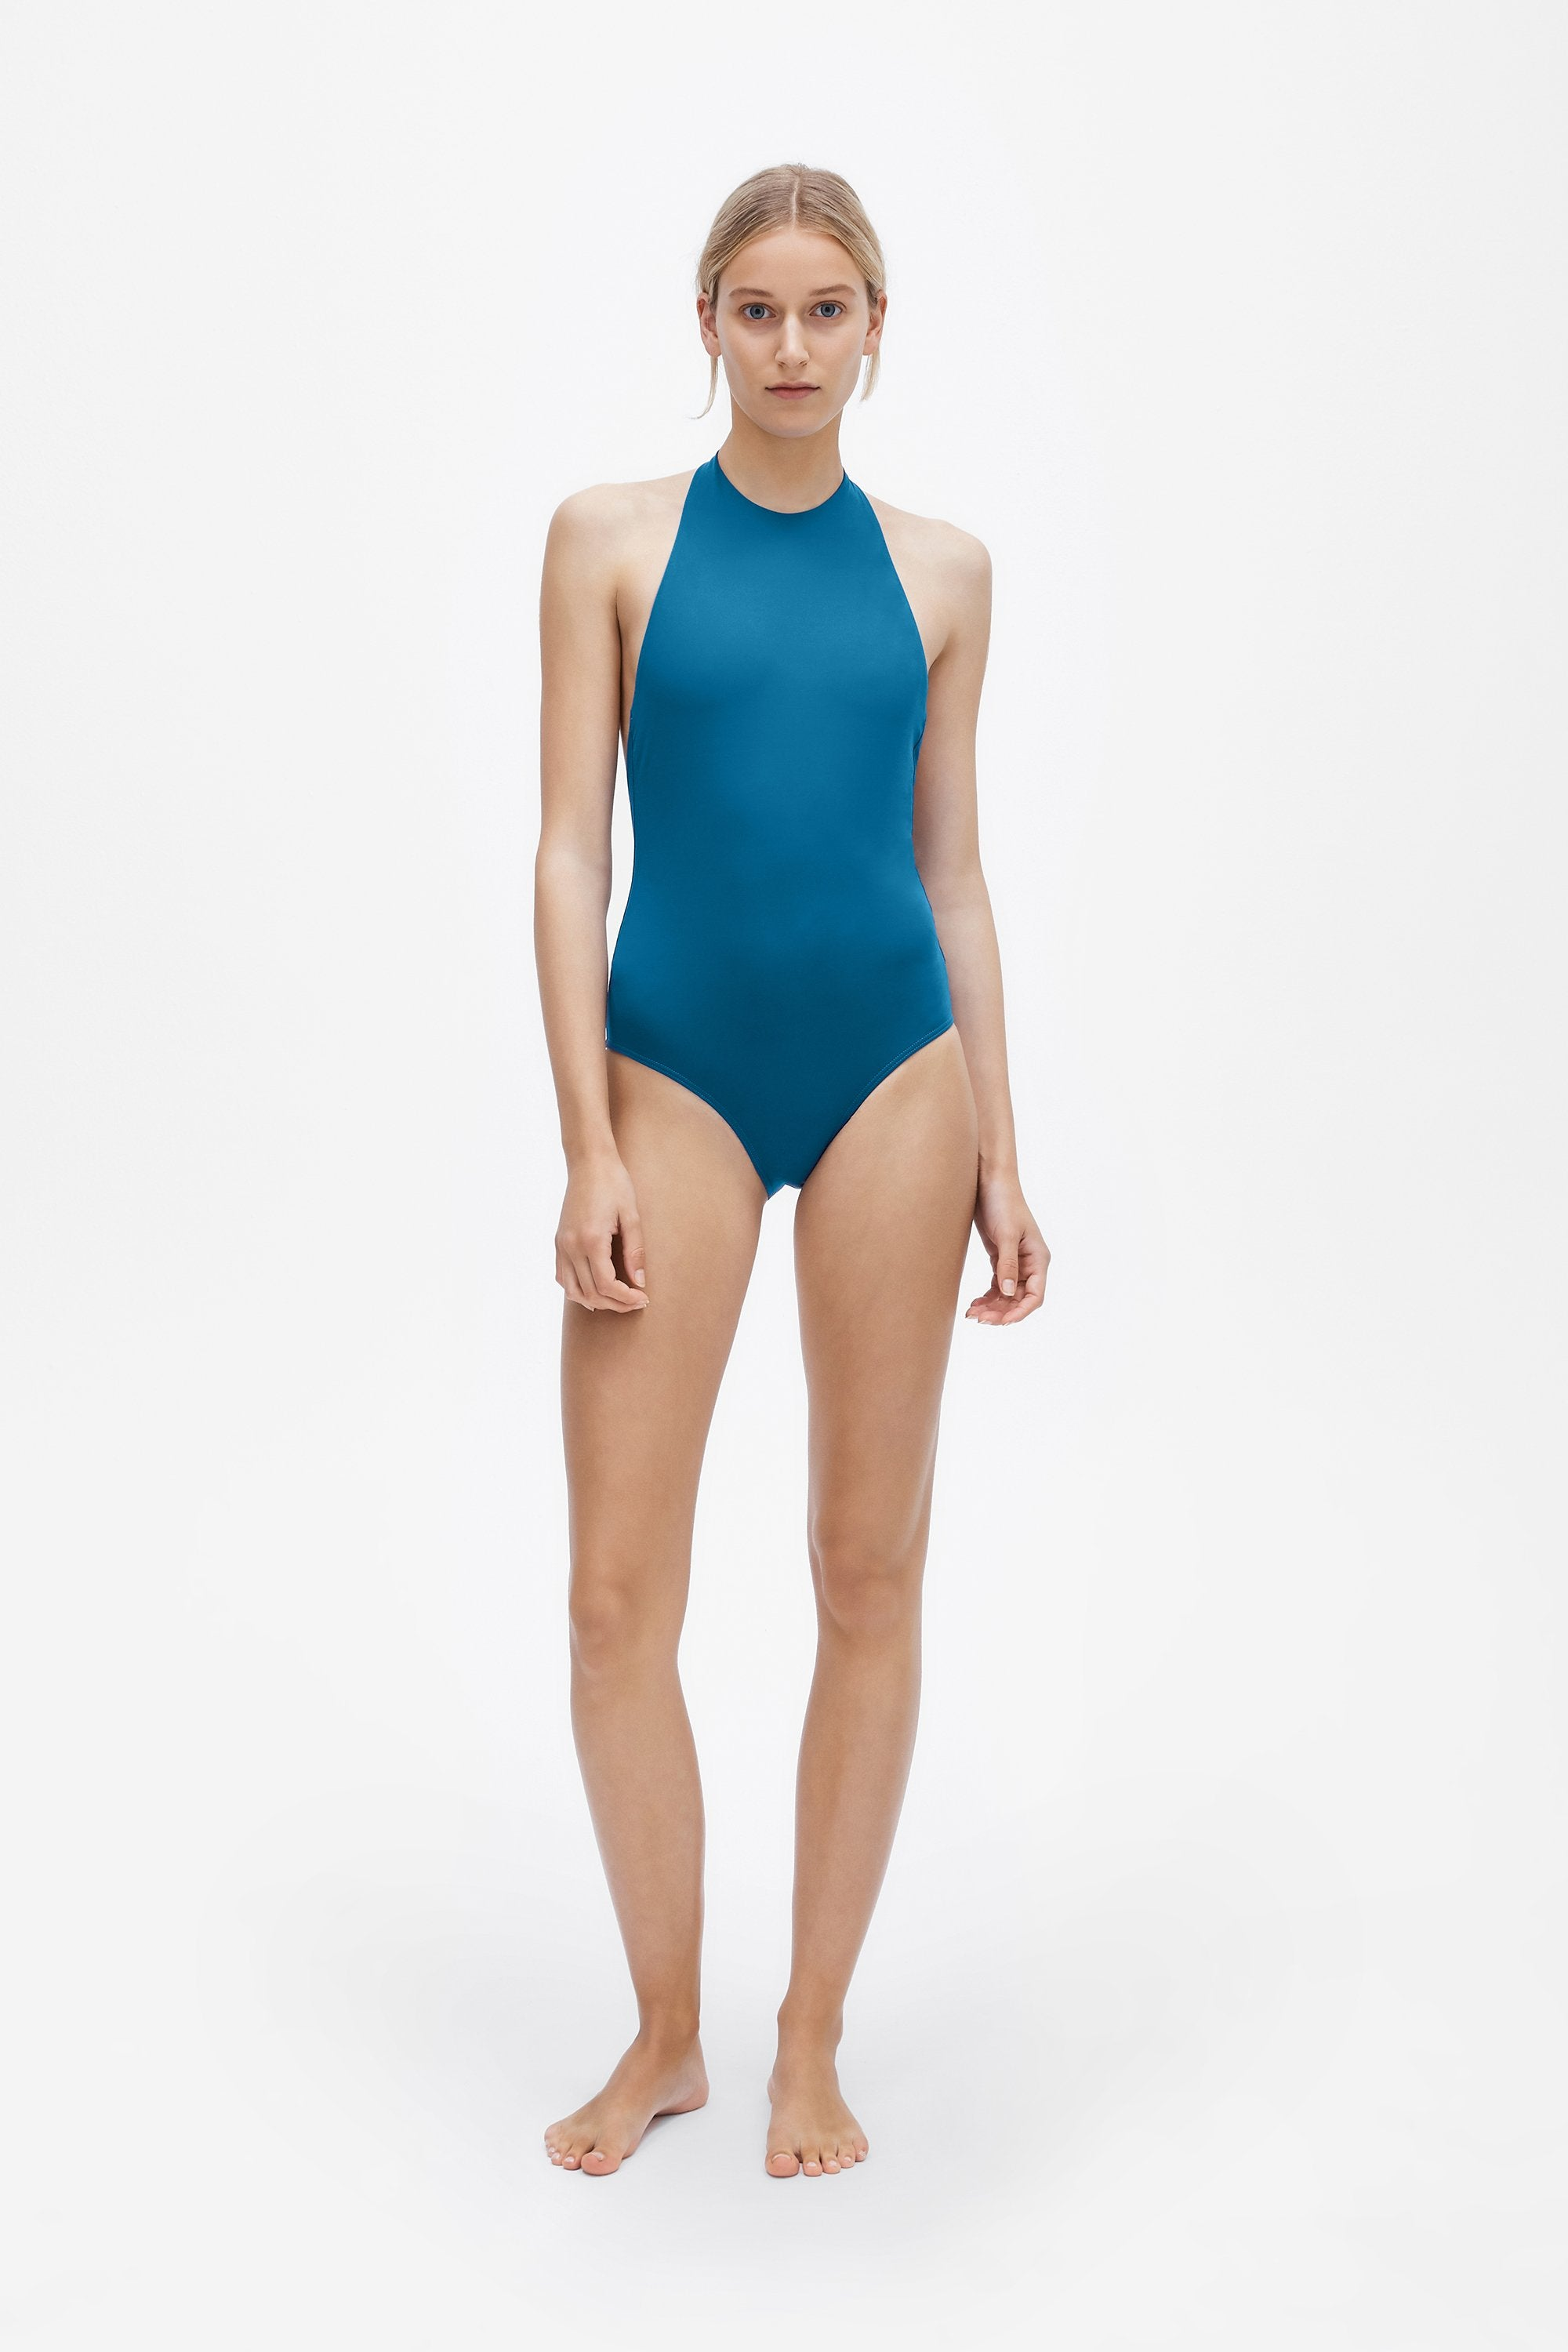 Jean one-piece - True blue - Swim one piece - Her Line